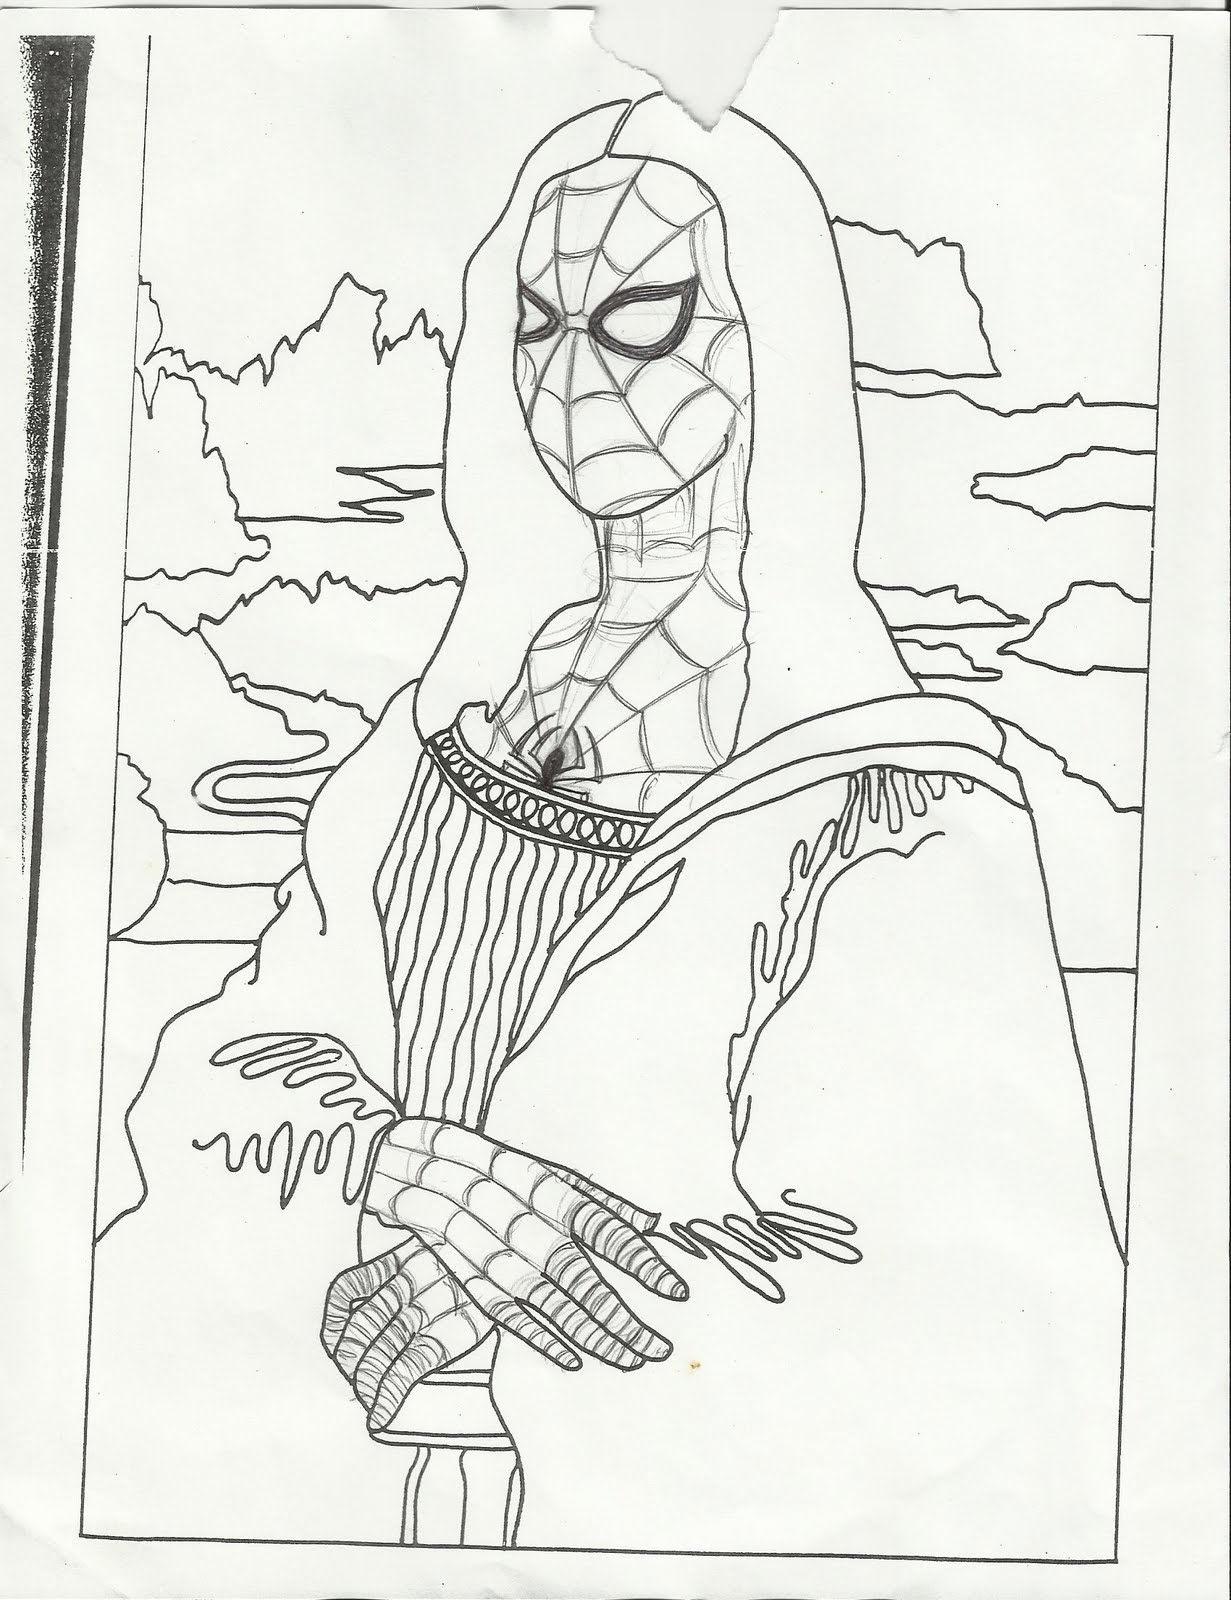 mona lisa coloring pages - photo#14